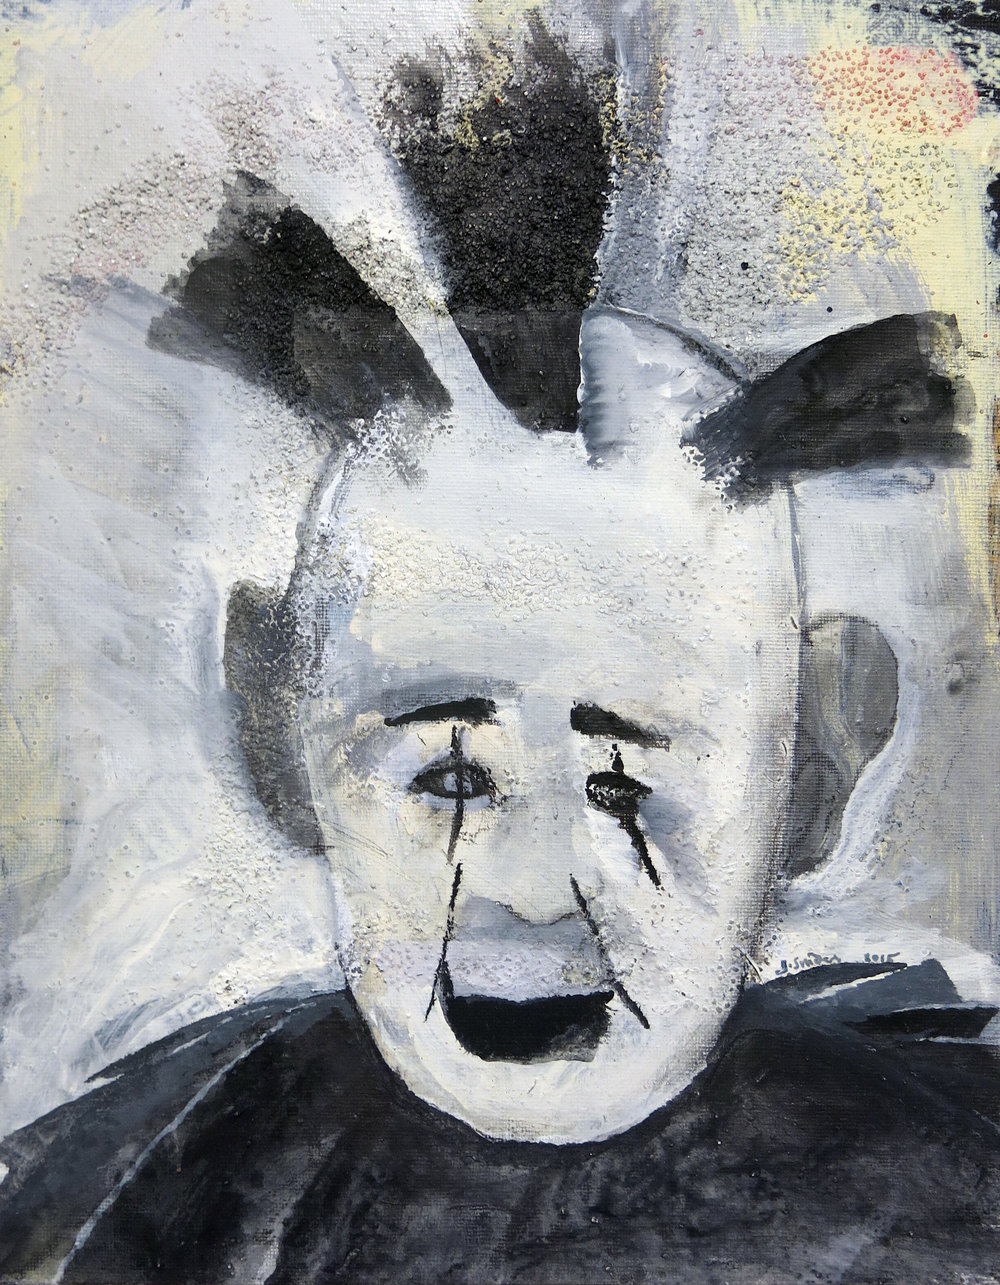 Jenny Snider,  American Clown,  2015, acrylic, graphite, carbon over glitter on canvas board, 14h x 11w in